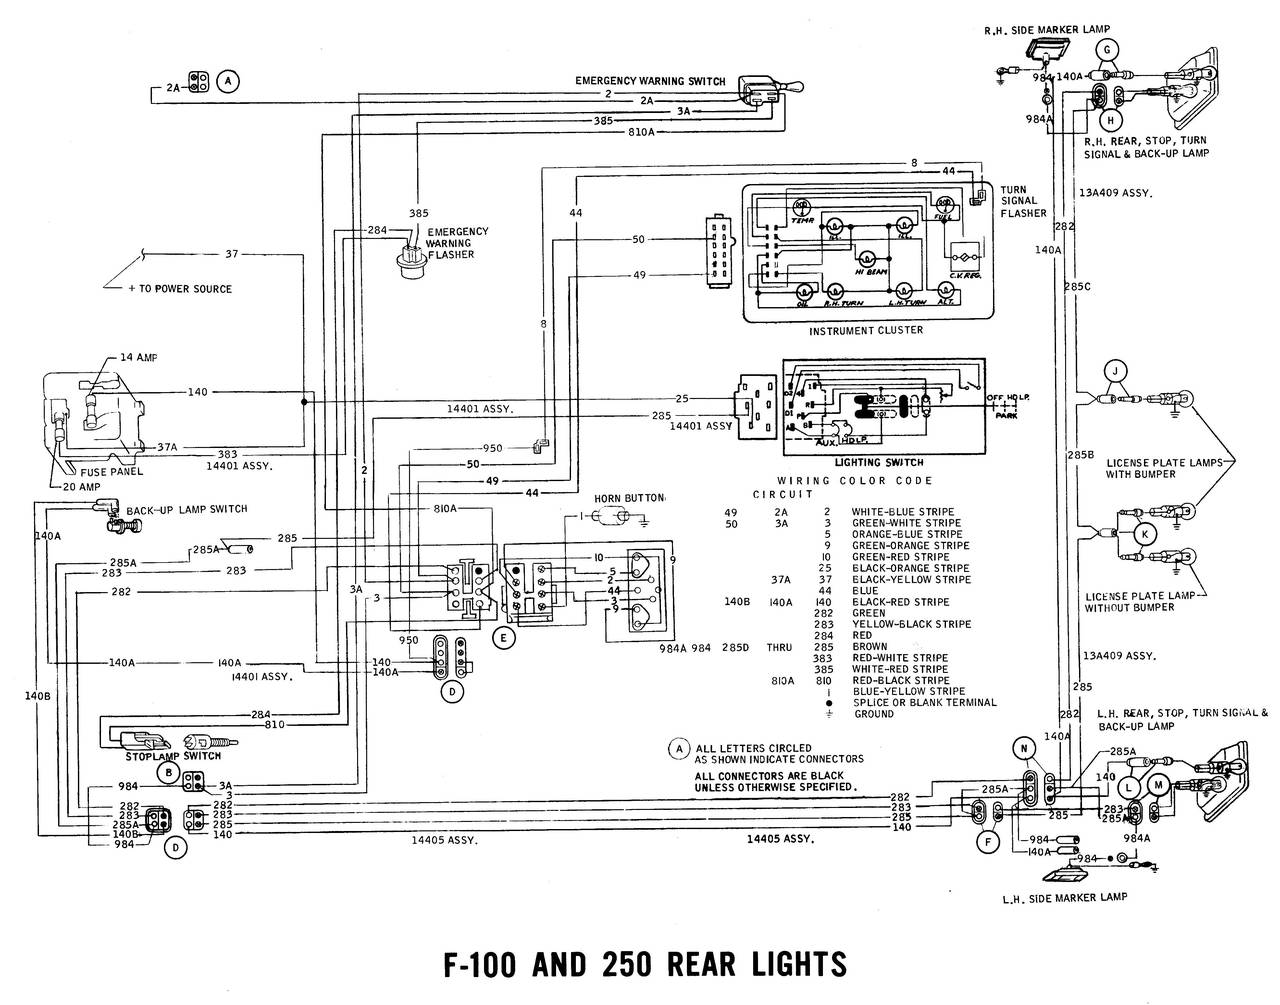 1971 wiring diagrams - ford truck fanatics 1971 ford truck wiring diagrams